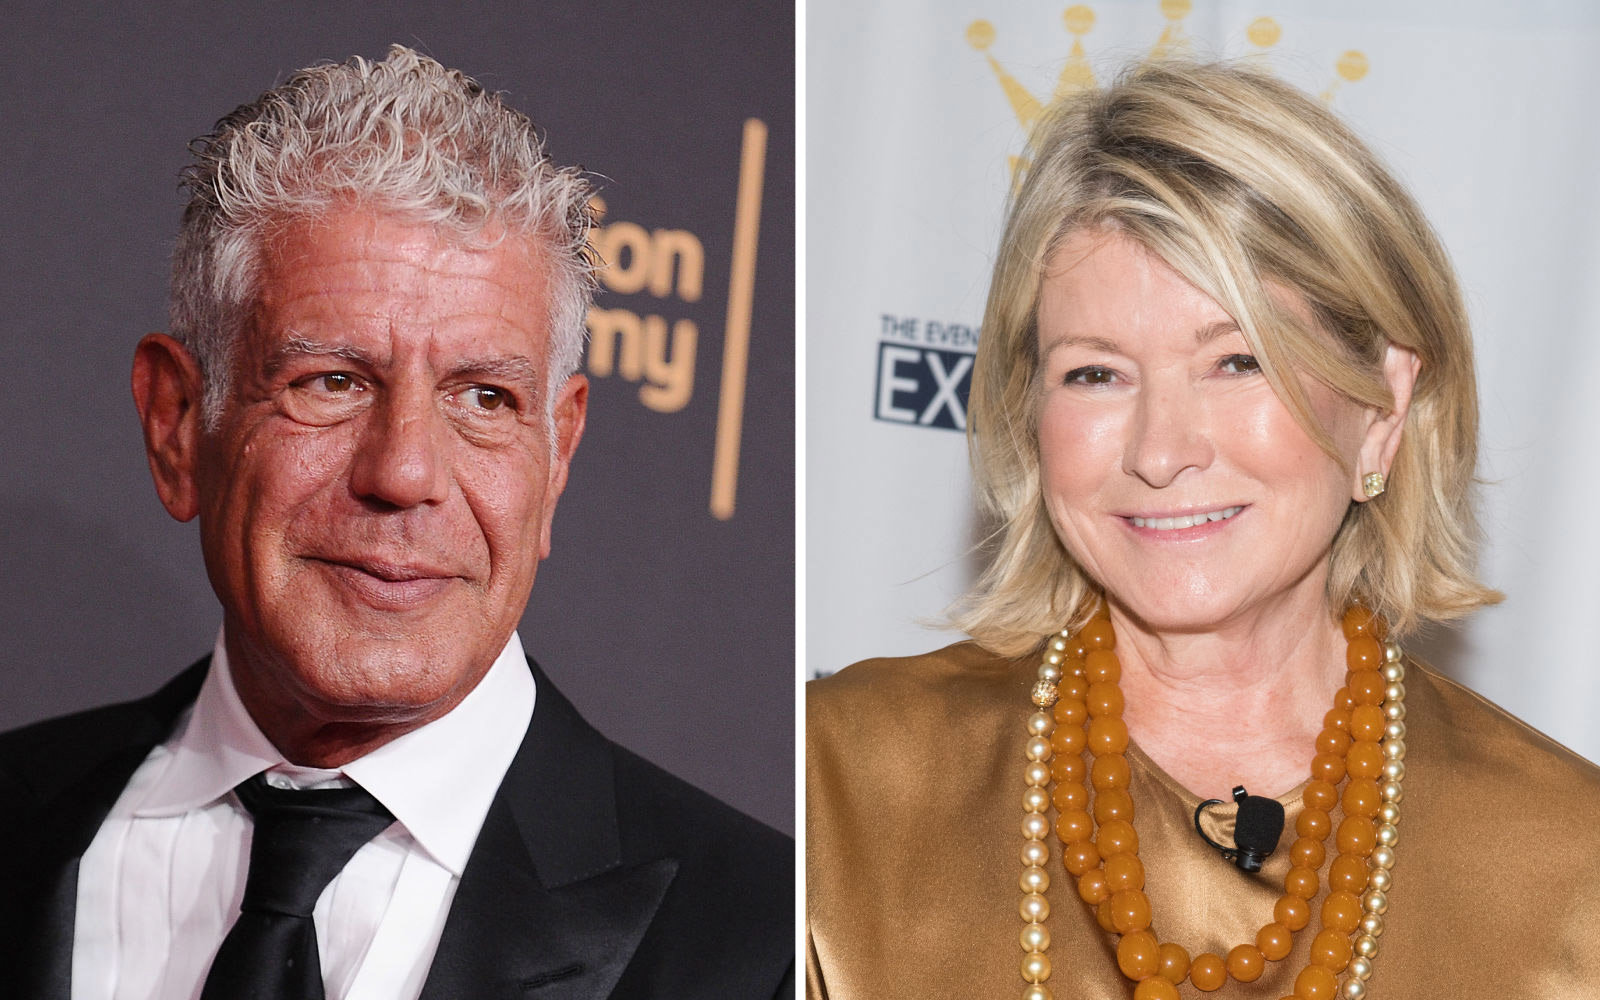 Split image of Anthony Bourdain and Martha Stewart